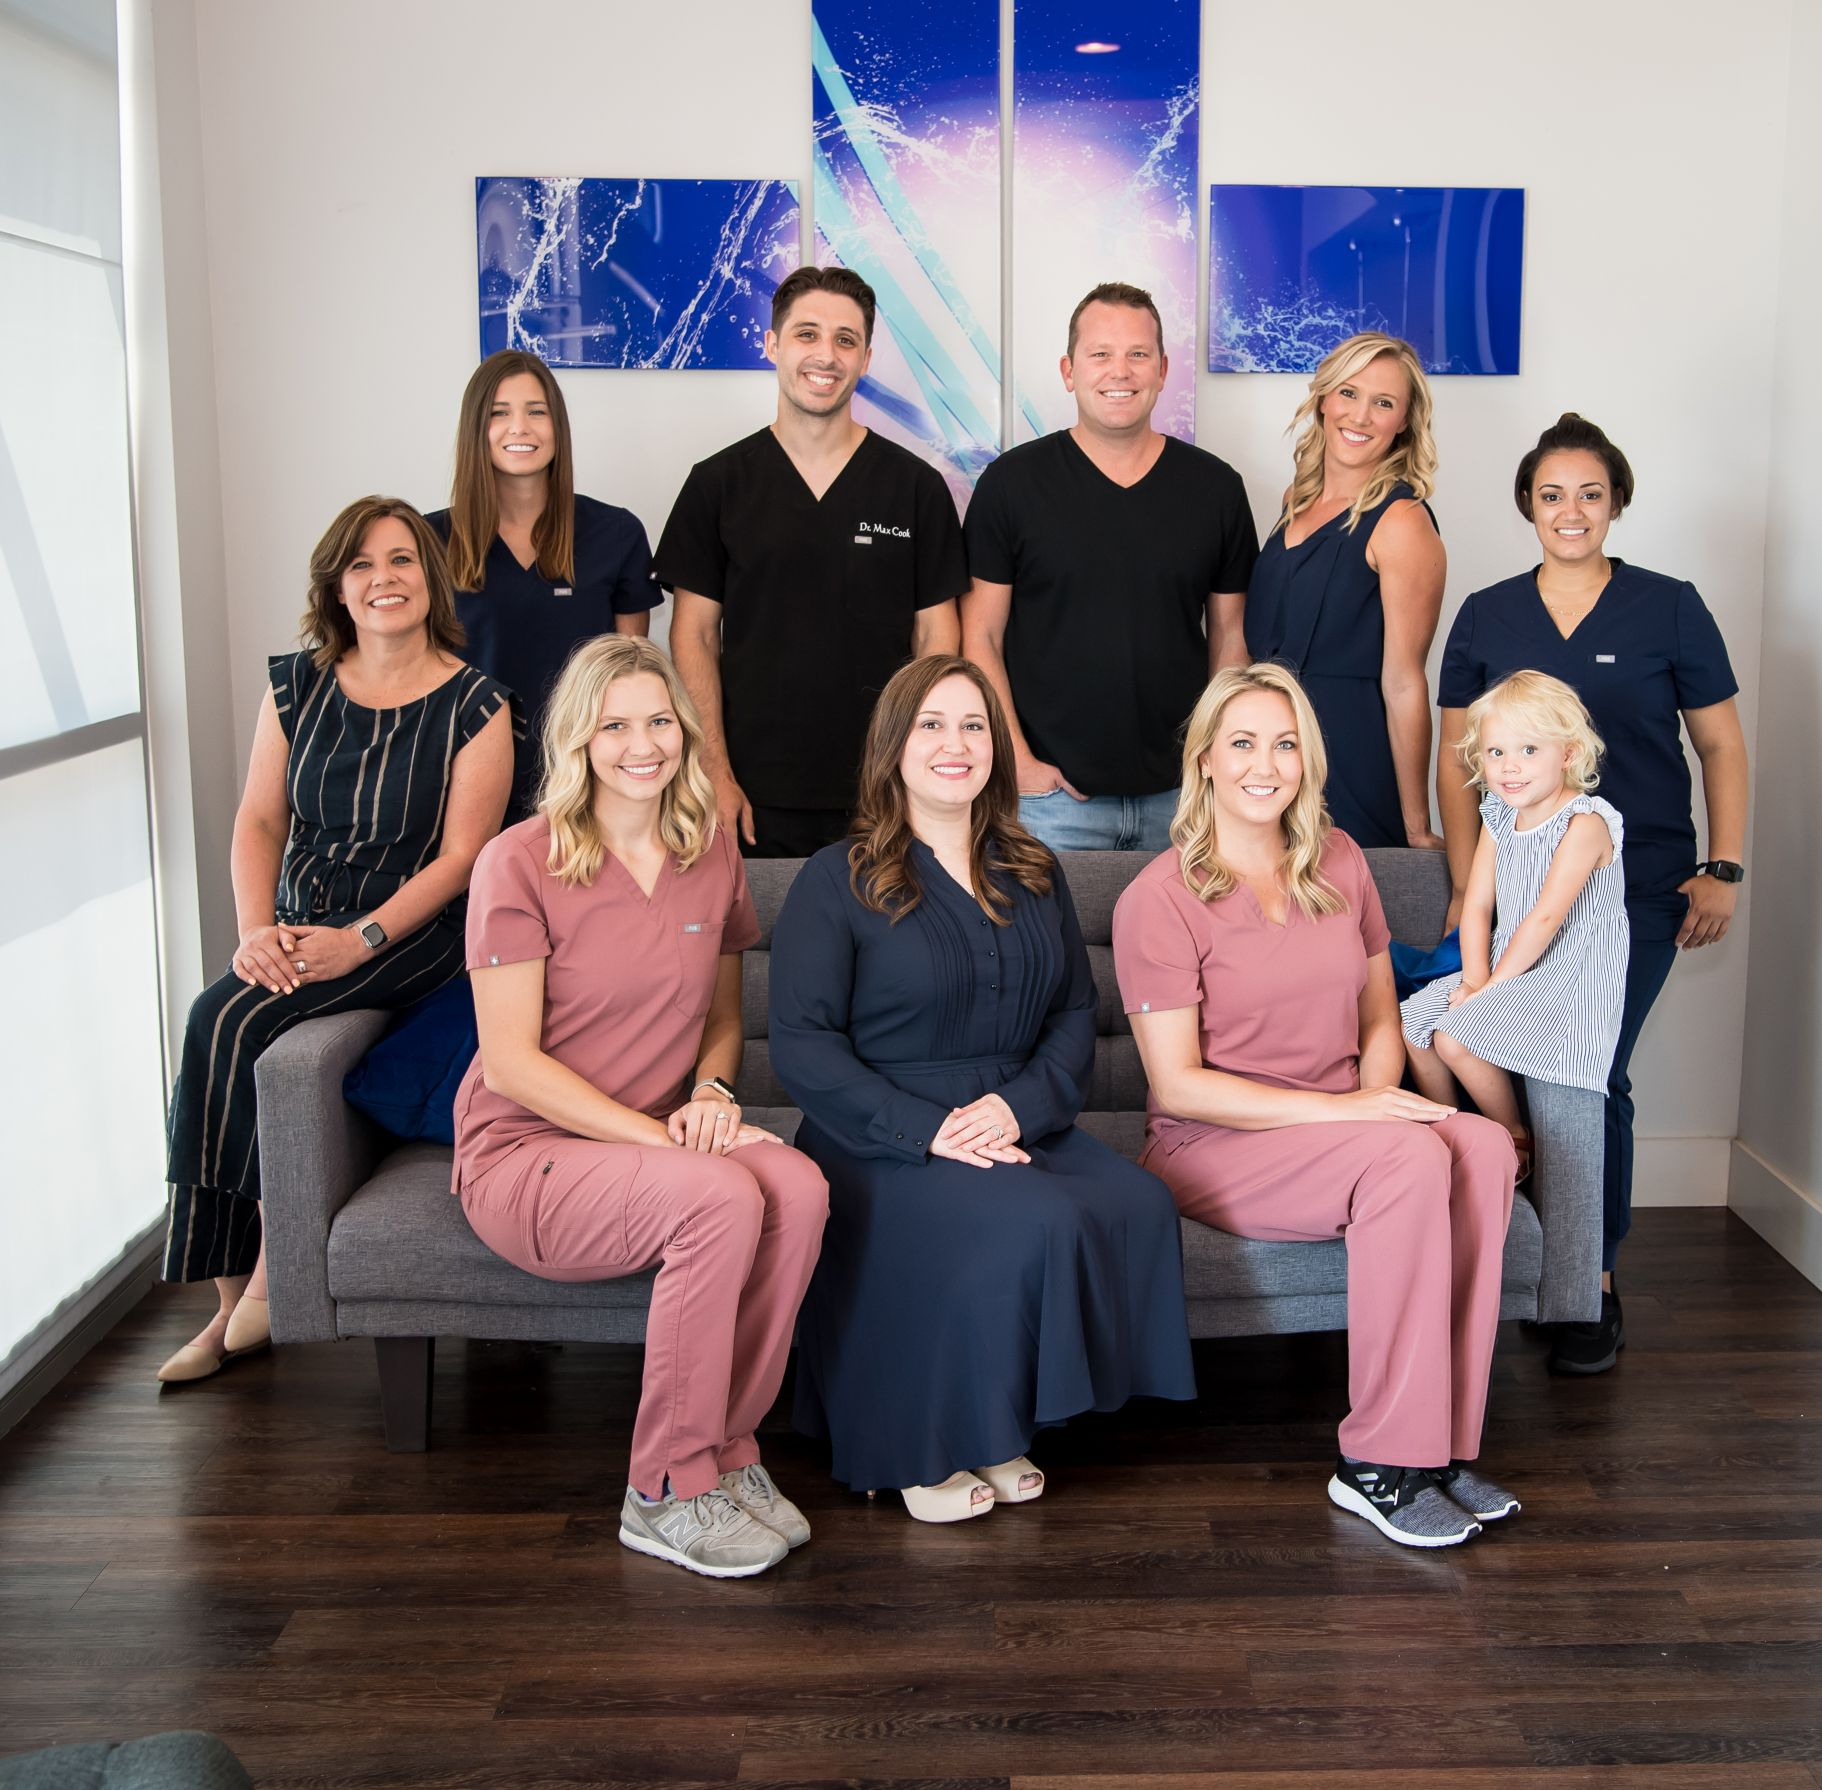 LIV Dentistry - Dentist for The Colony and Frisco, TX. Dentist office Frisco, The Colony, Texas